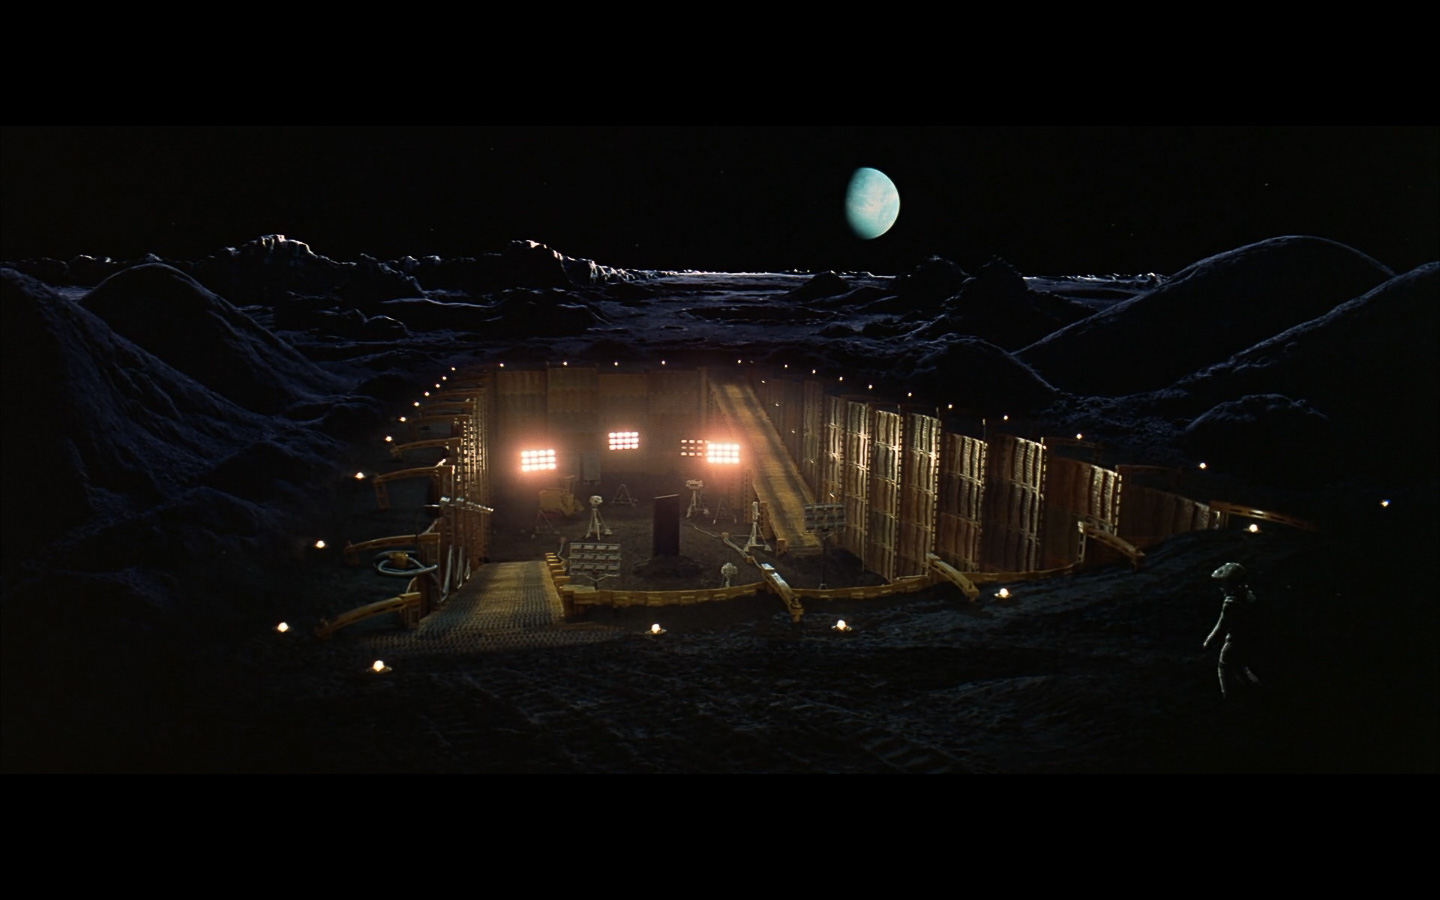 scene on the moon obelisk - space odyssey-2